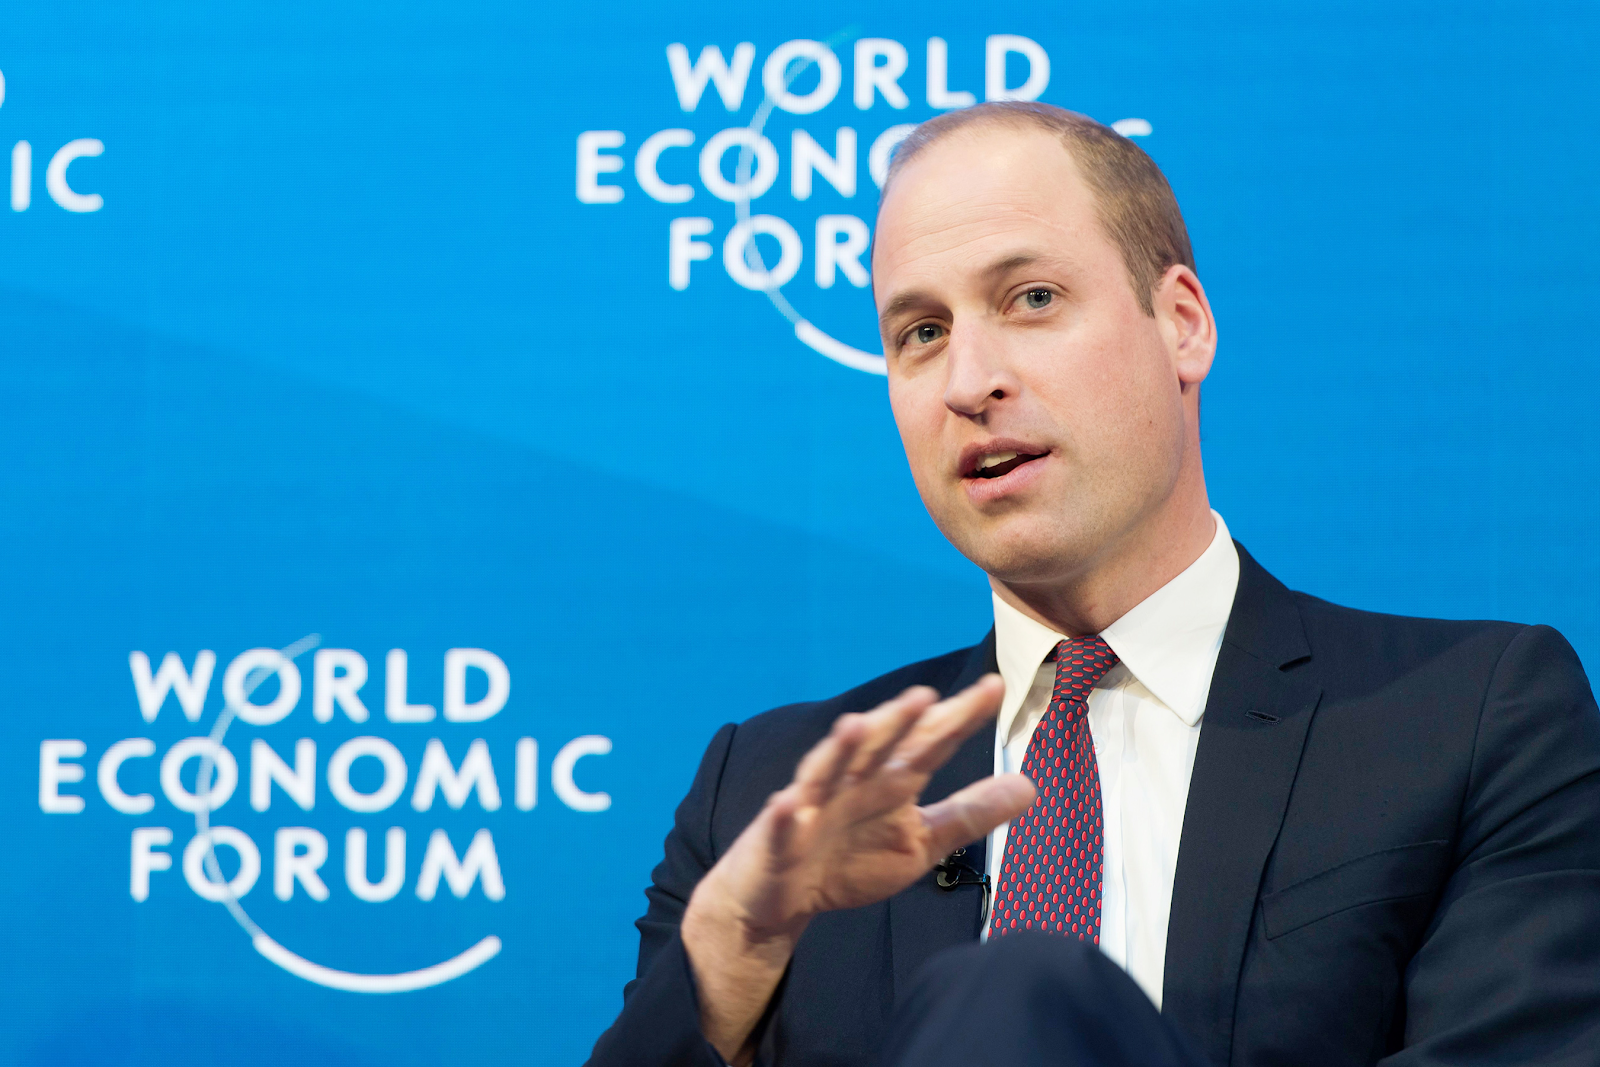 Prince William speaking at the World Economic Forum